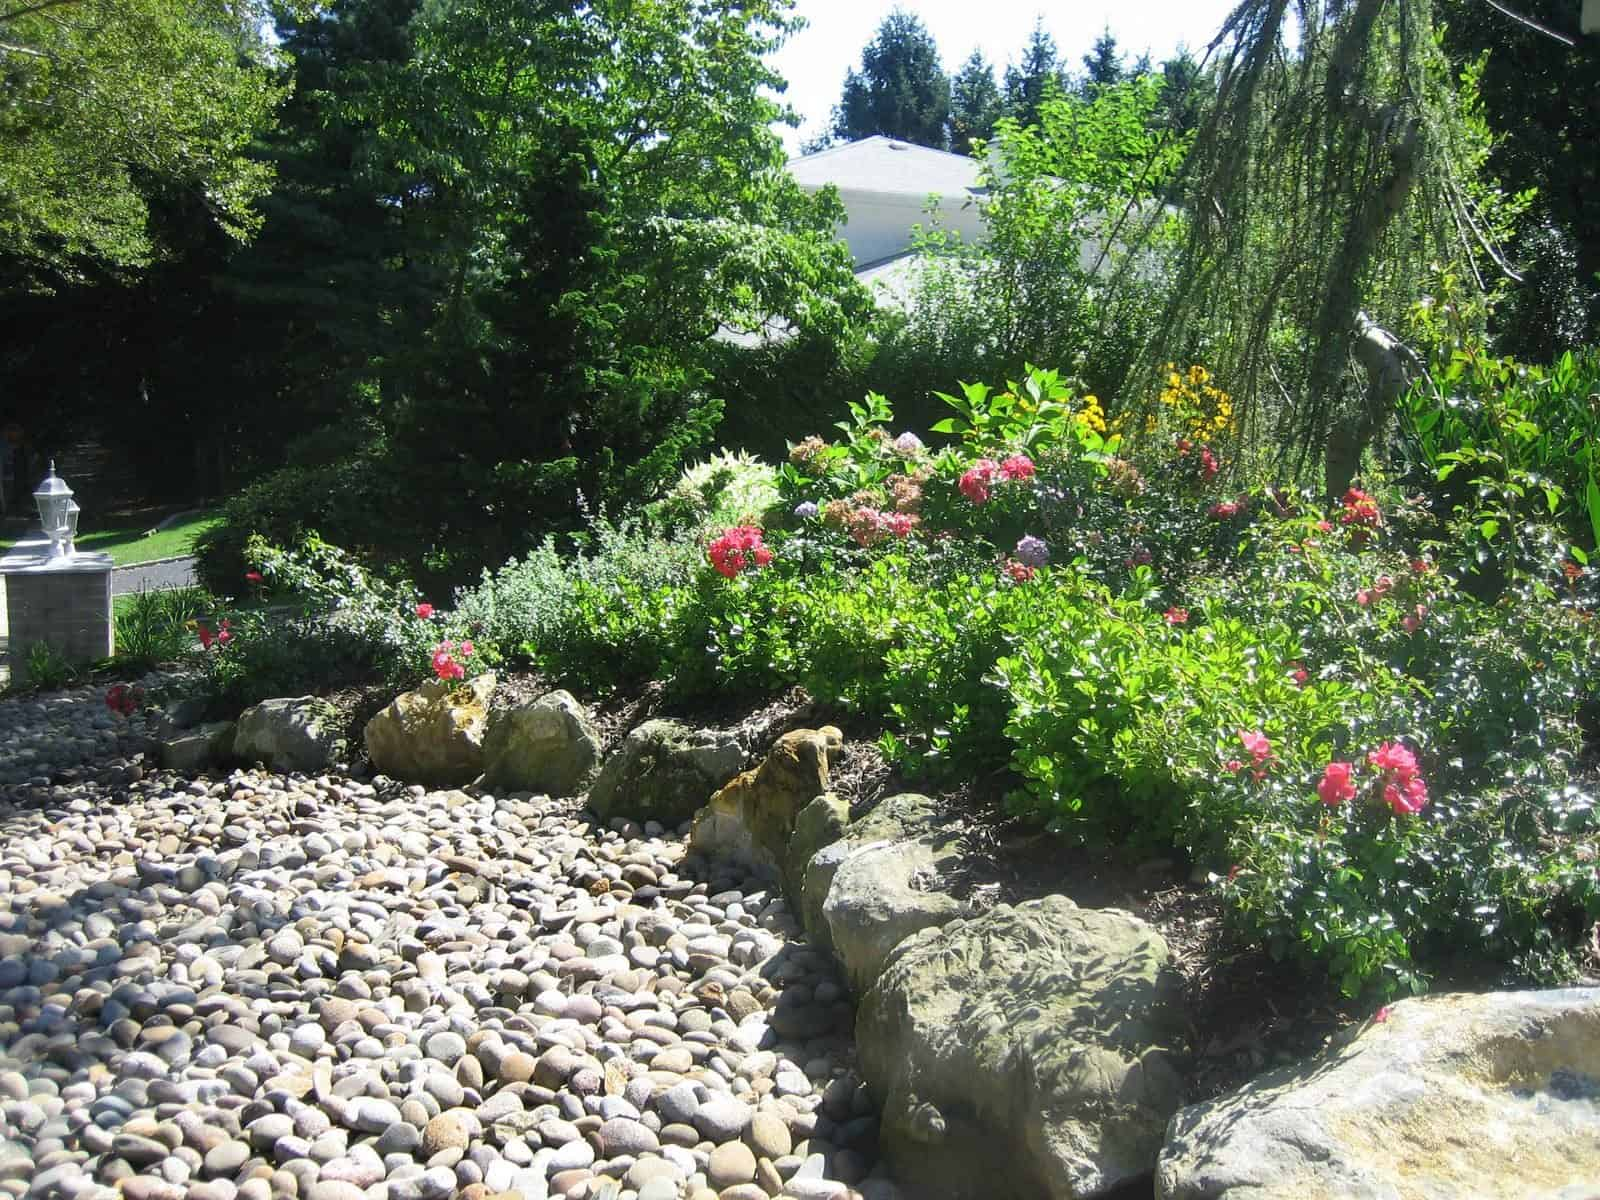 Moss rock retaining wall using 2' x 2' boulders - Dix Hills, Long Island NY